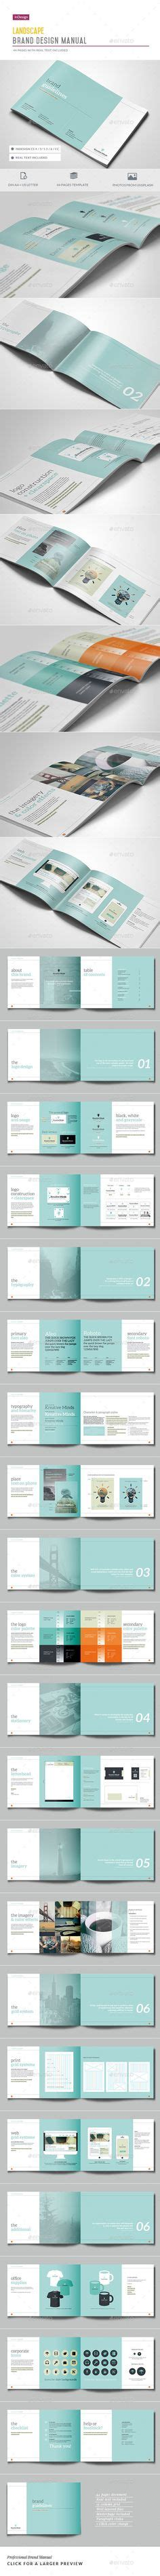 brochure layout guidelines cover page table of contents print layout design